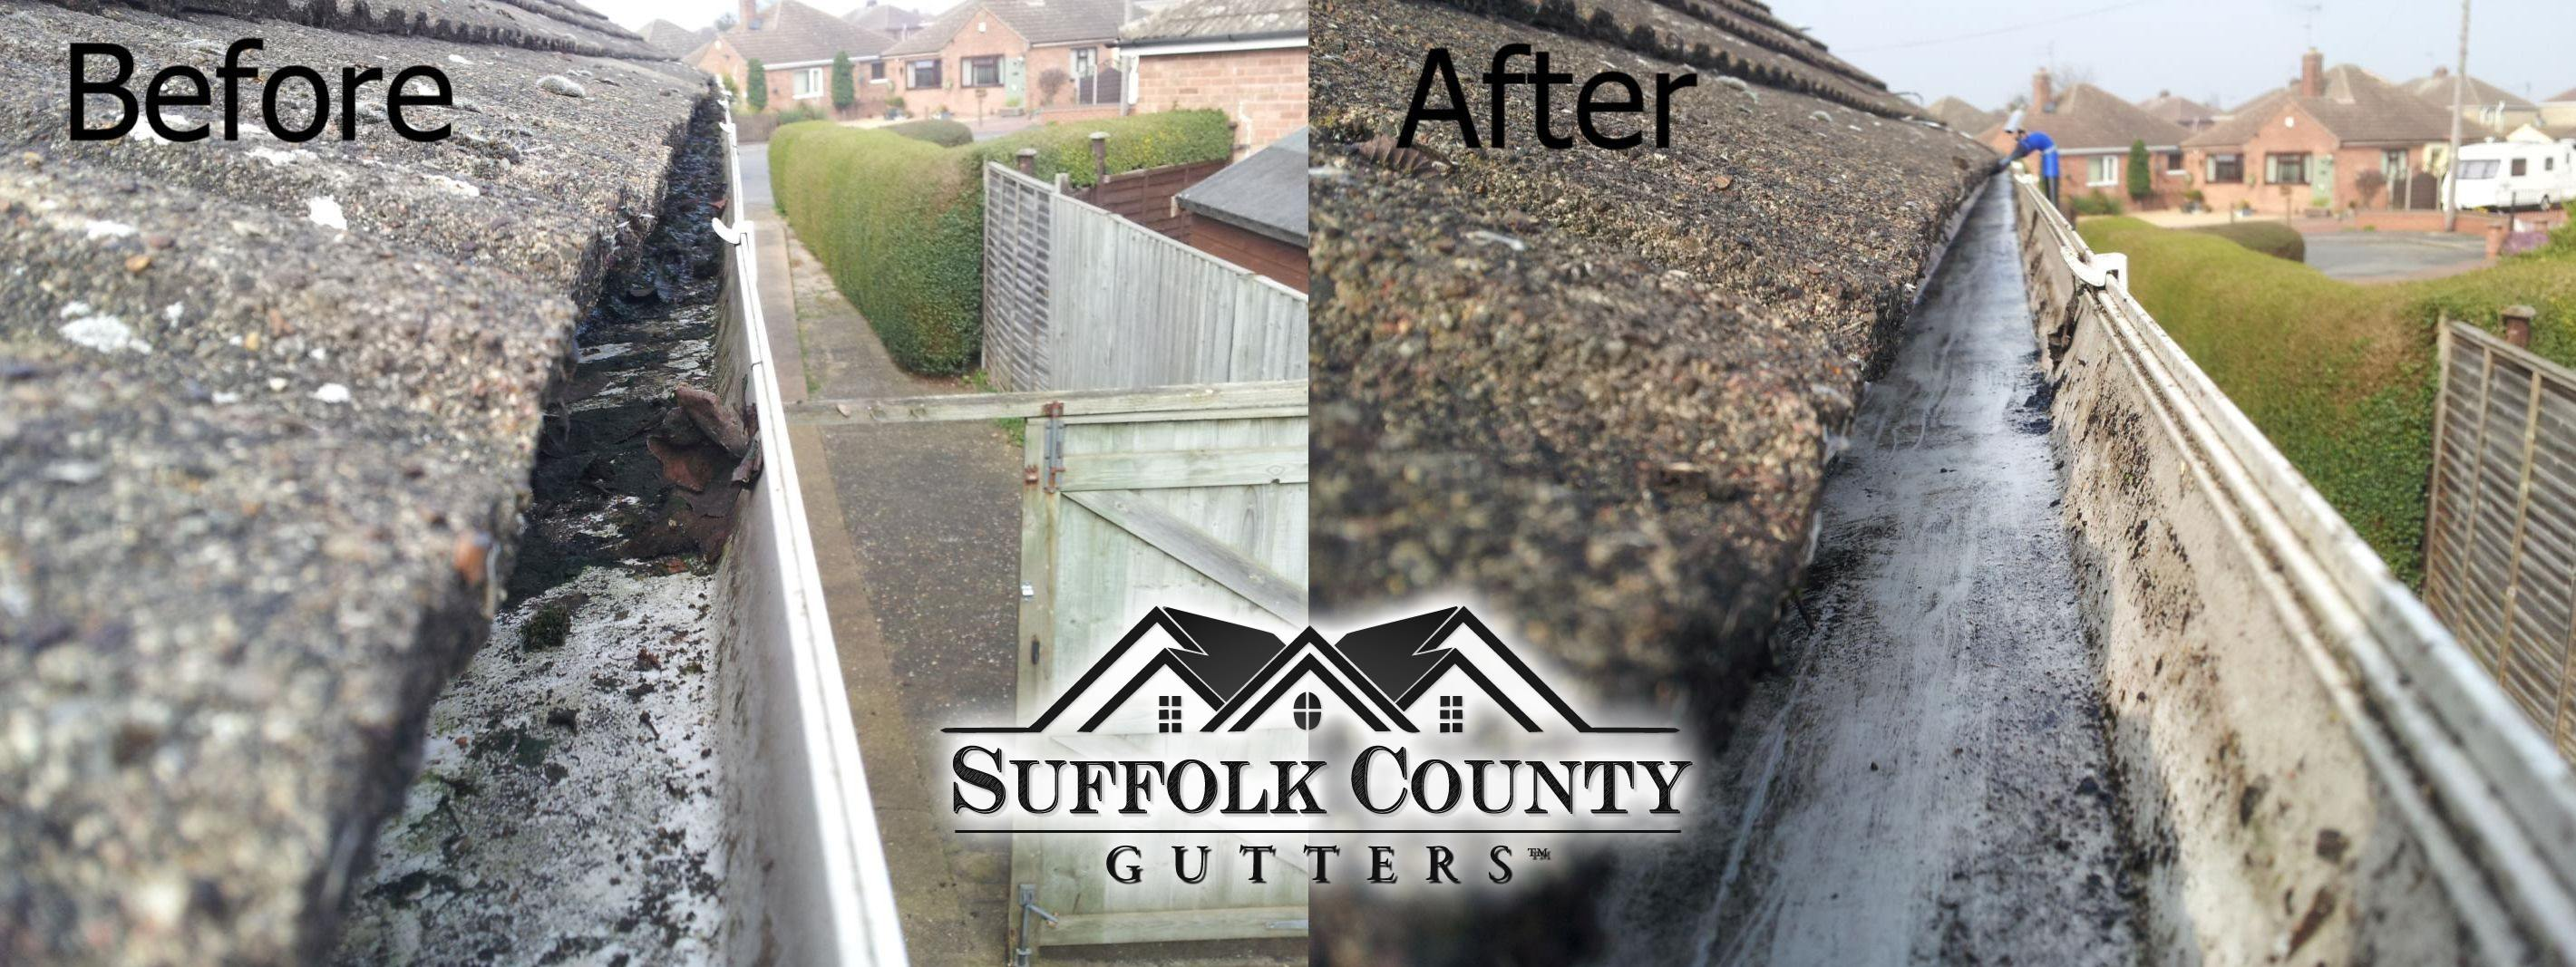 suffolk nassau gutter cleaning